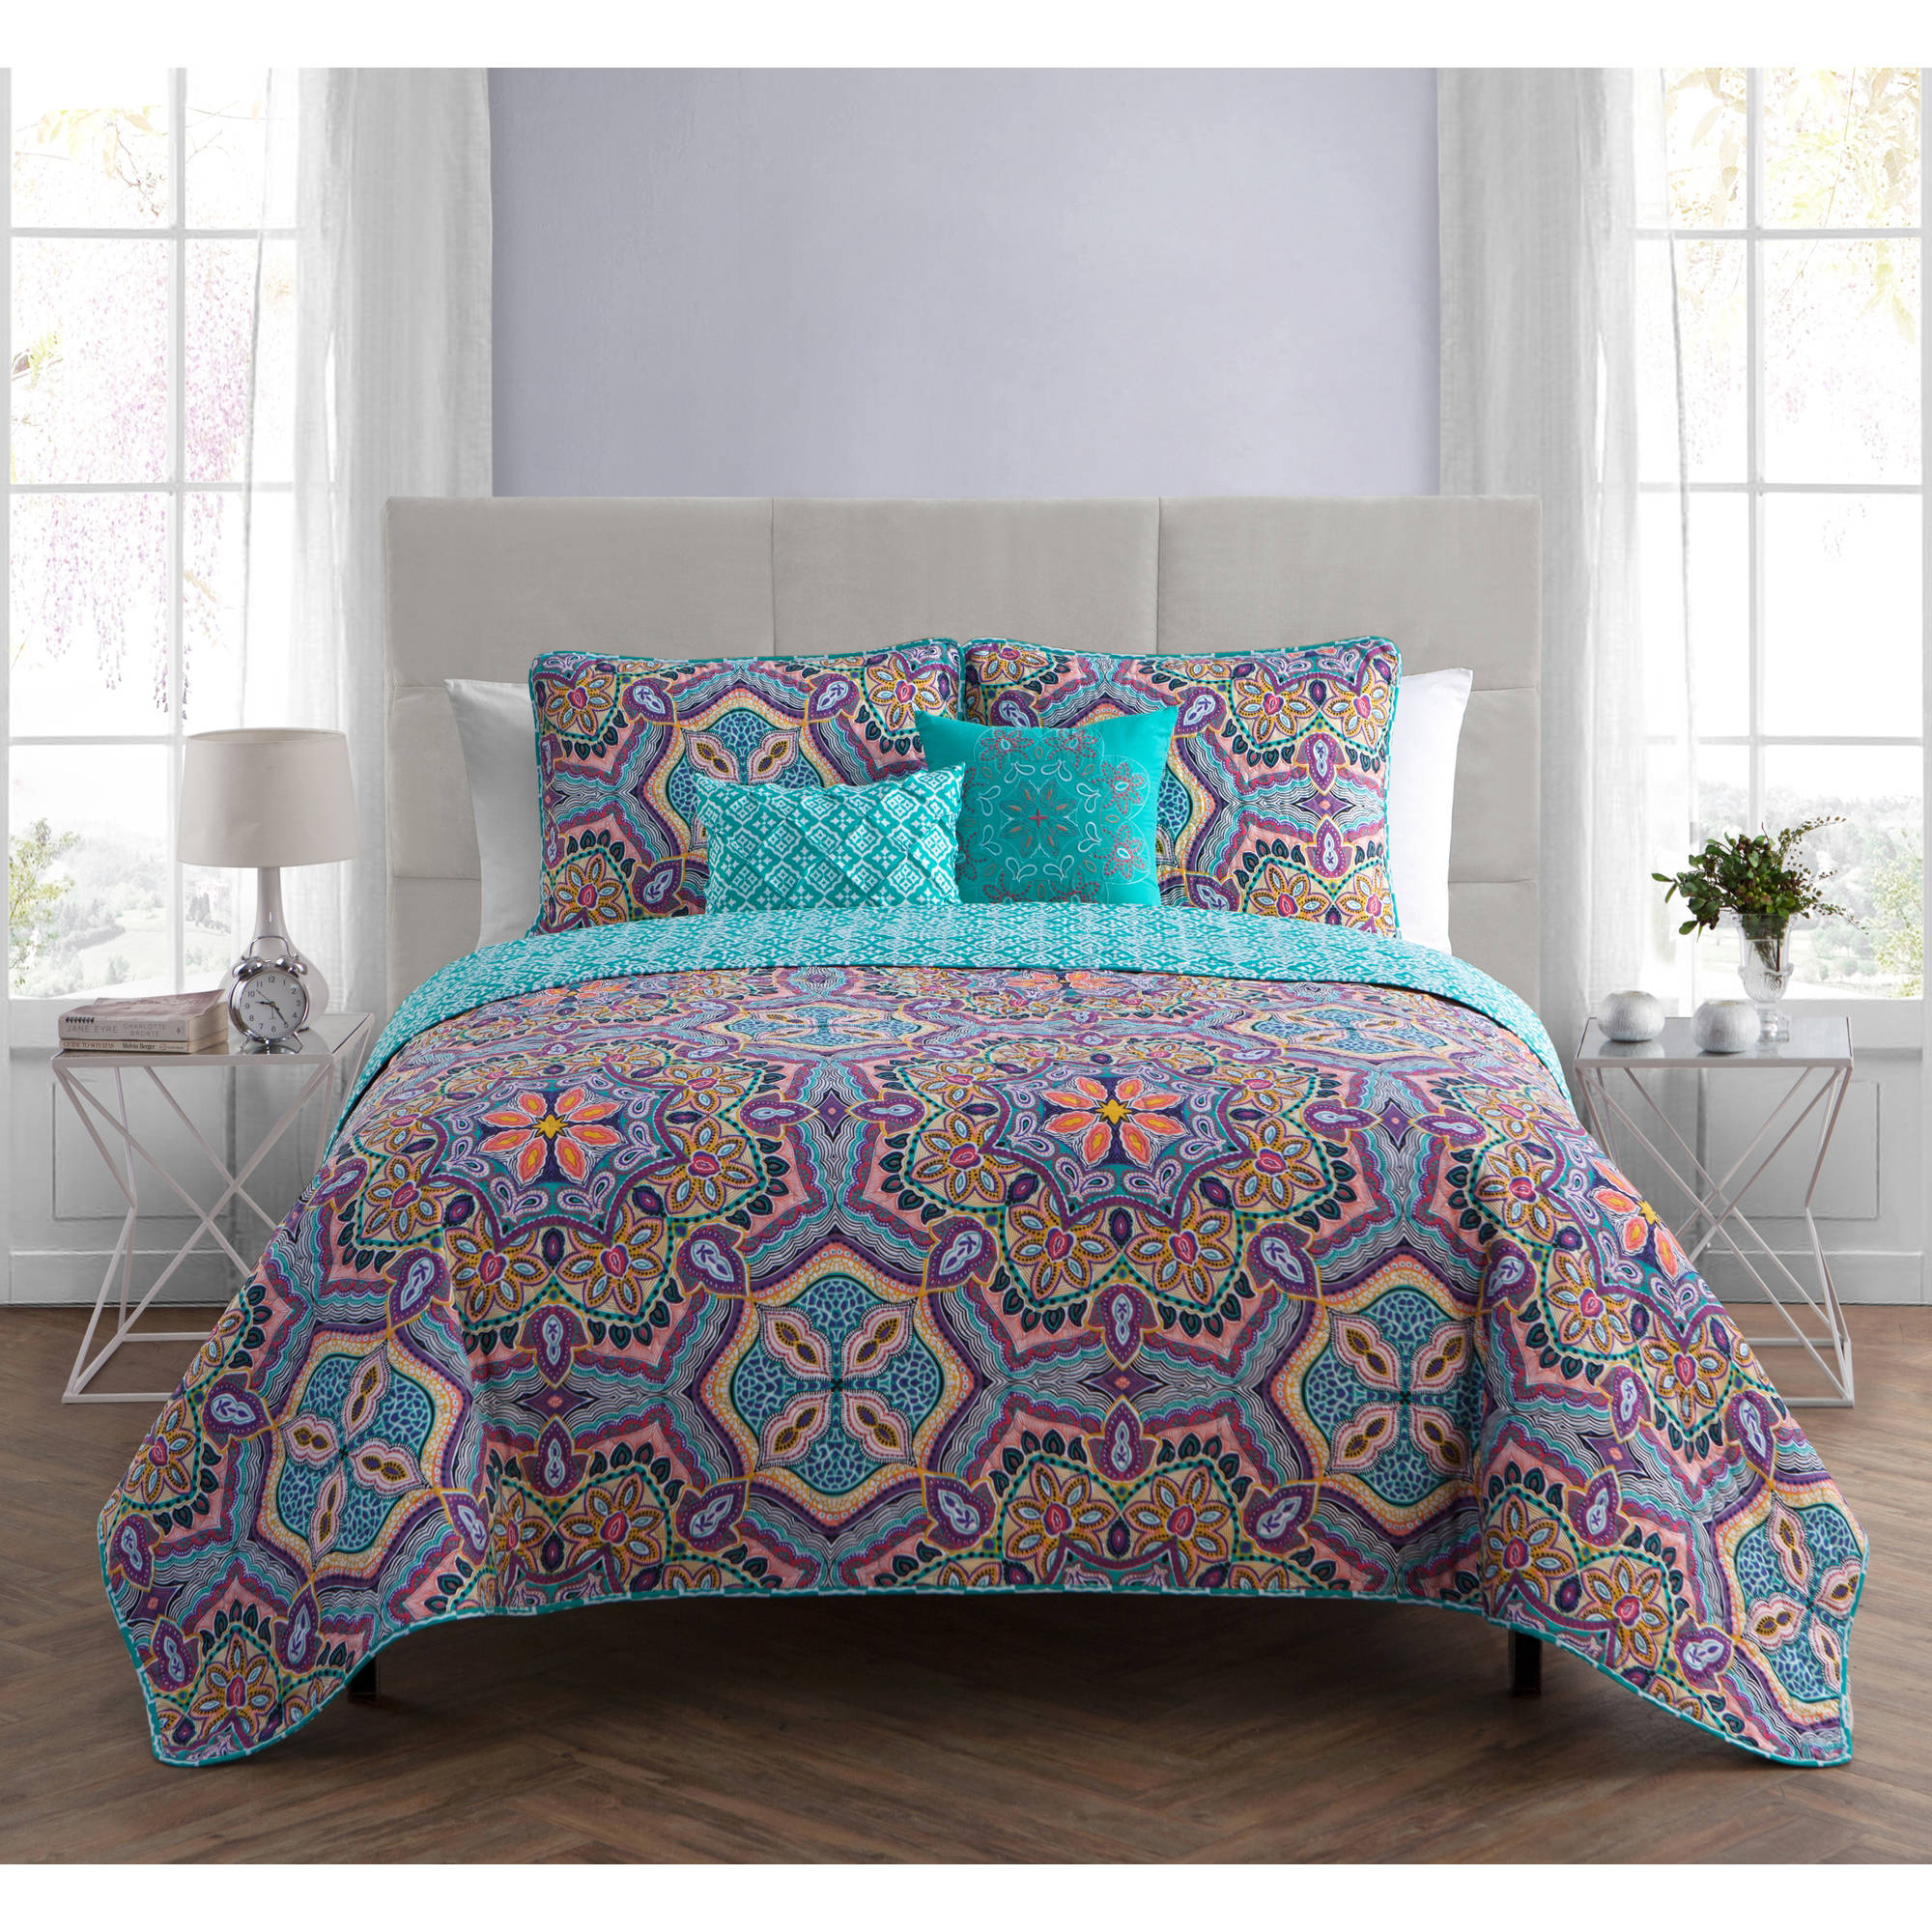 VCNY Home Yara Geometric Medallion 4/5-Piece Reversible Bedding Quilt Set, Multiple Sizes and Colors